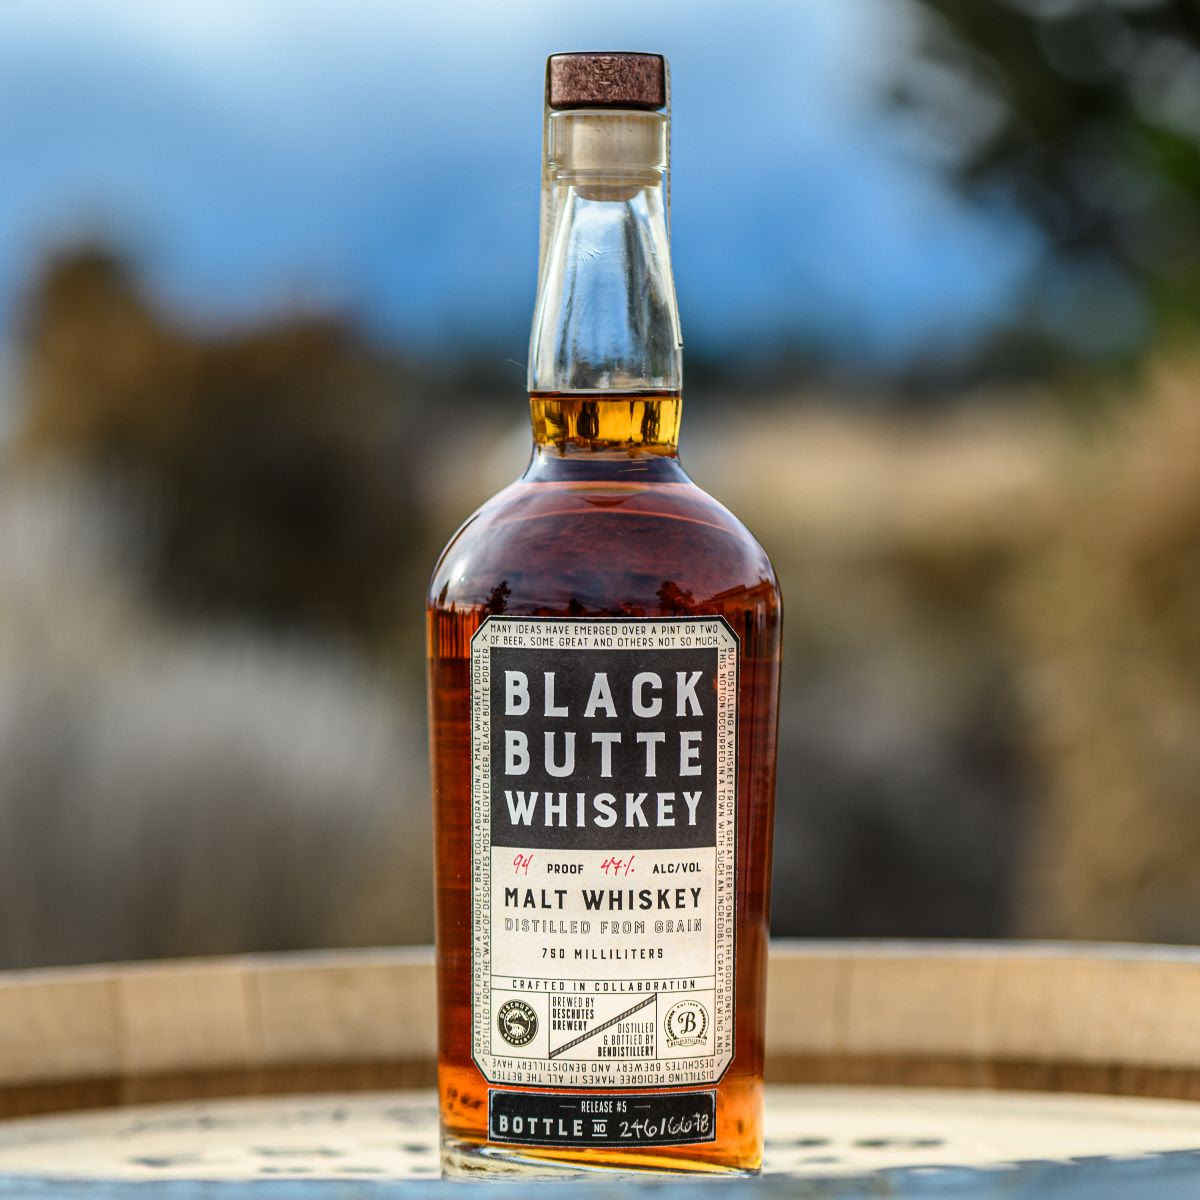 image of Bendisitllery and Deschutes Brewery's Black Butte Whiskey courtesy of Deschutes Brewery